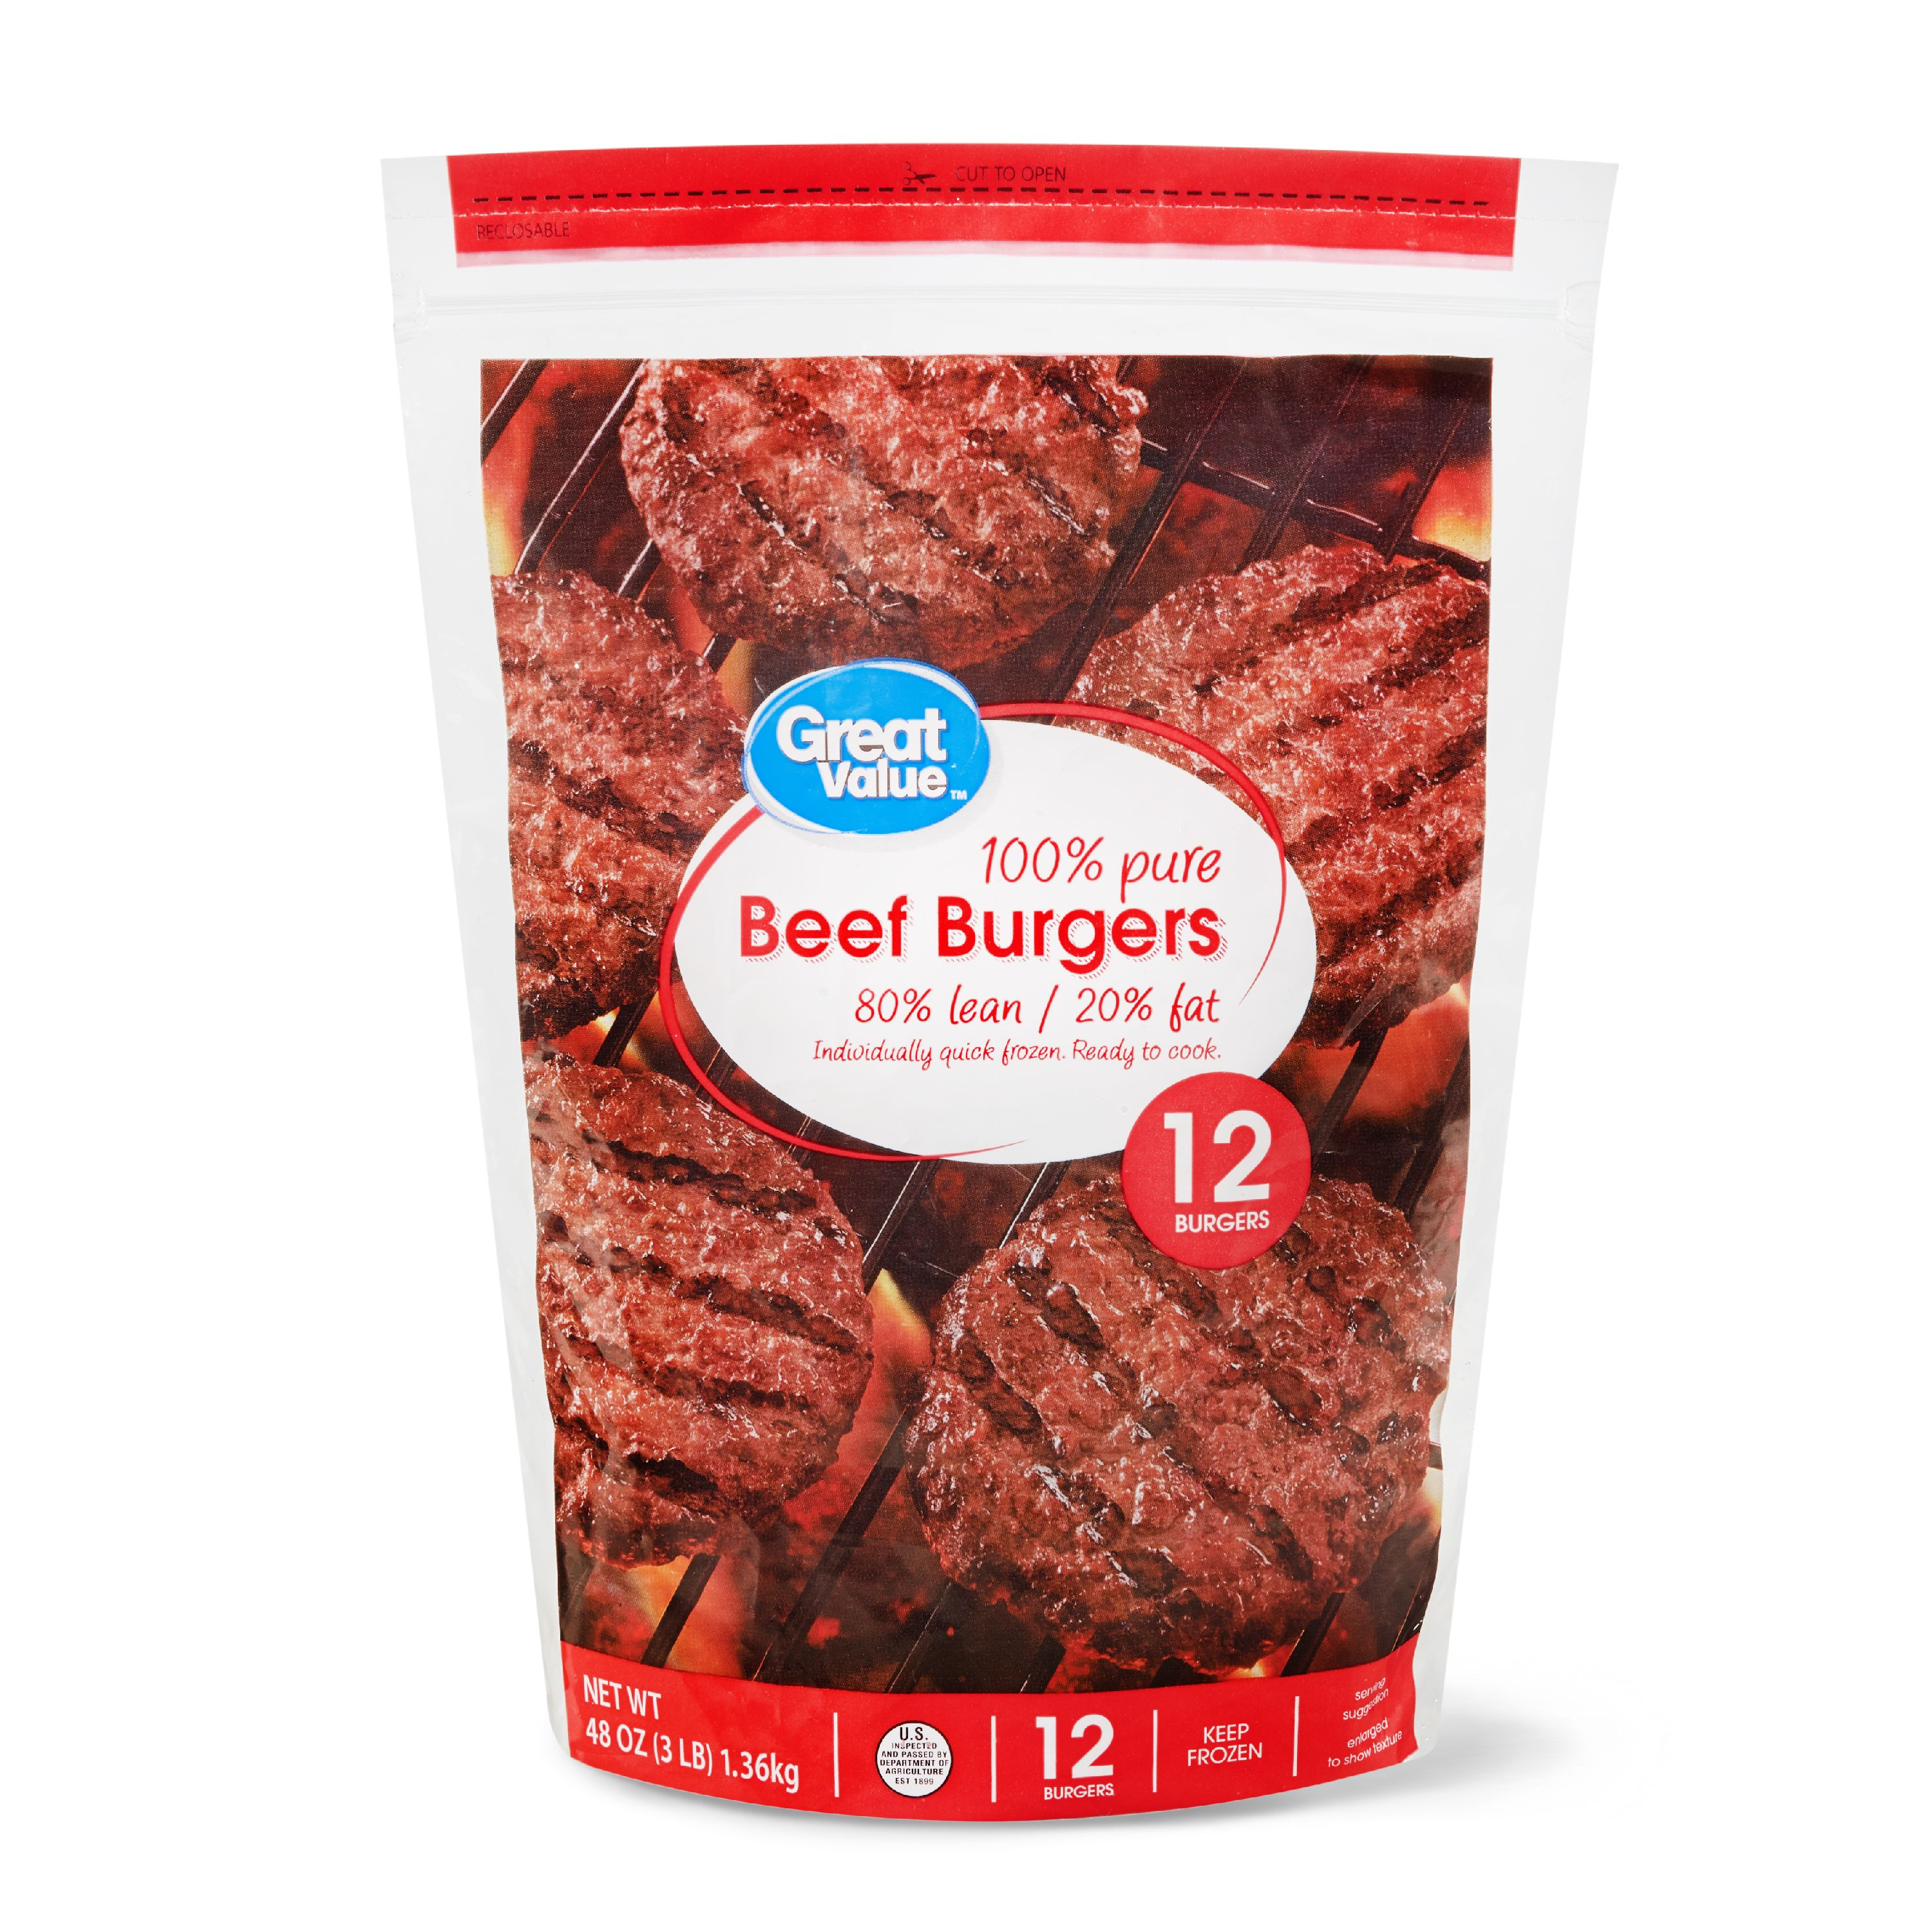 Great Value Beef Burgers, 80% Lean/20% Fat, 3 lbs, 12 Count